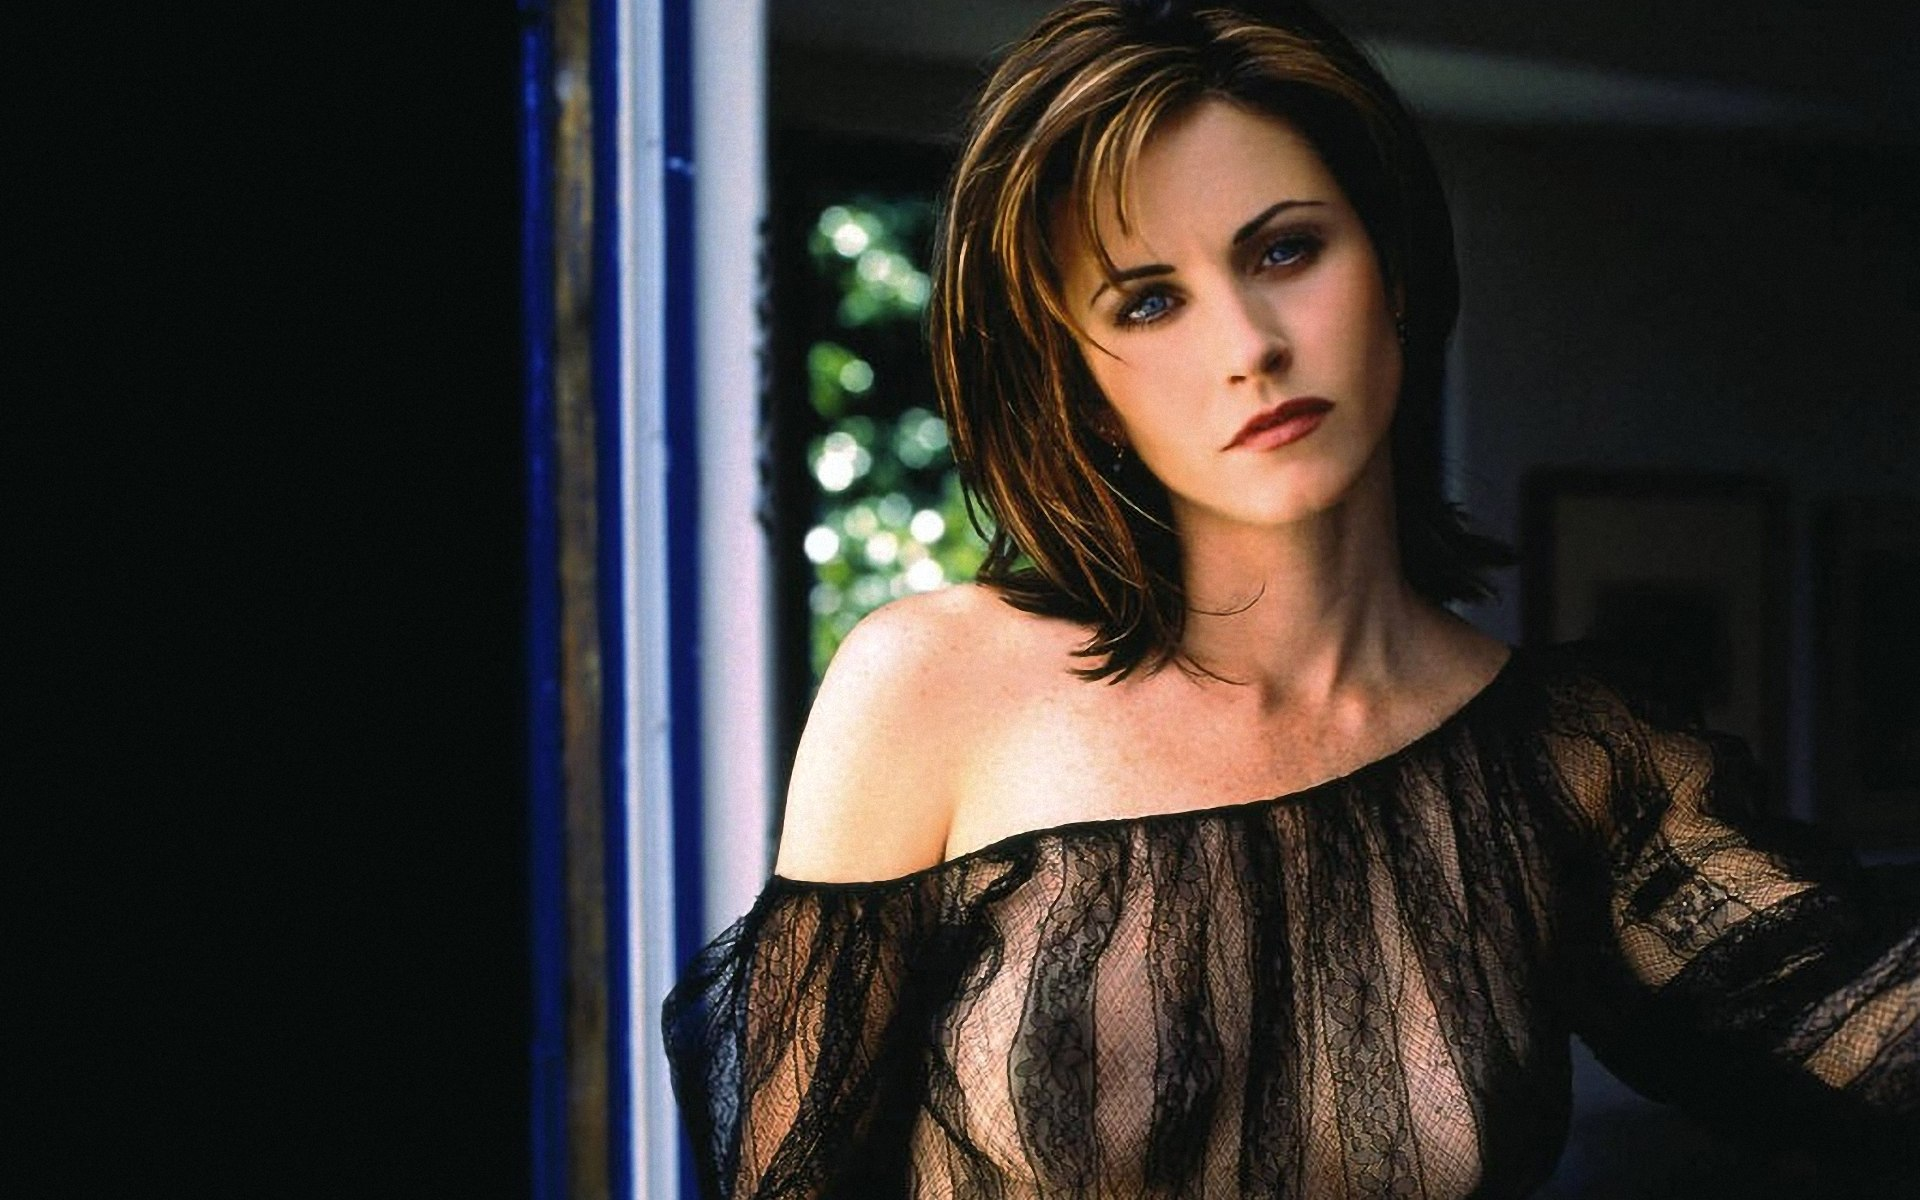 1920x1200 - Courtney Cox Wallpapers 5